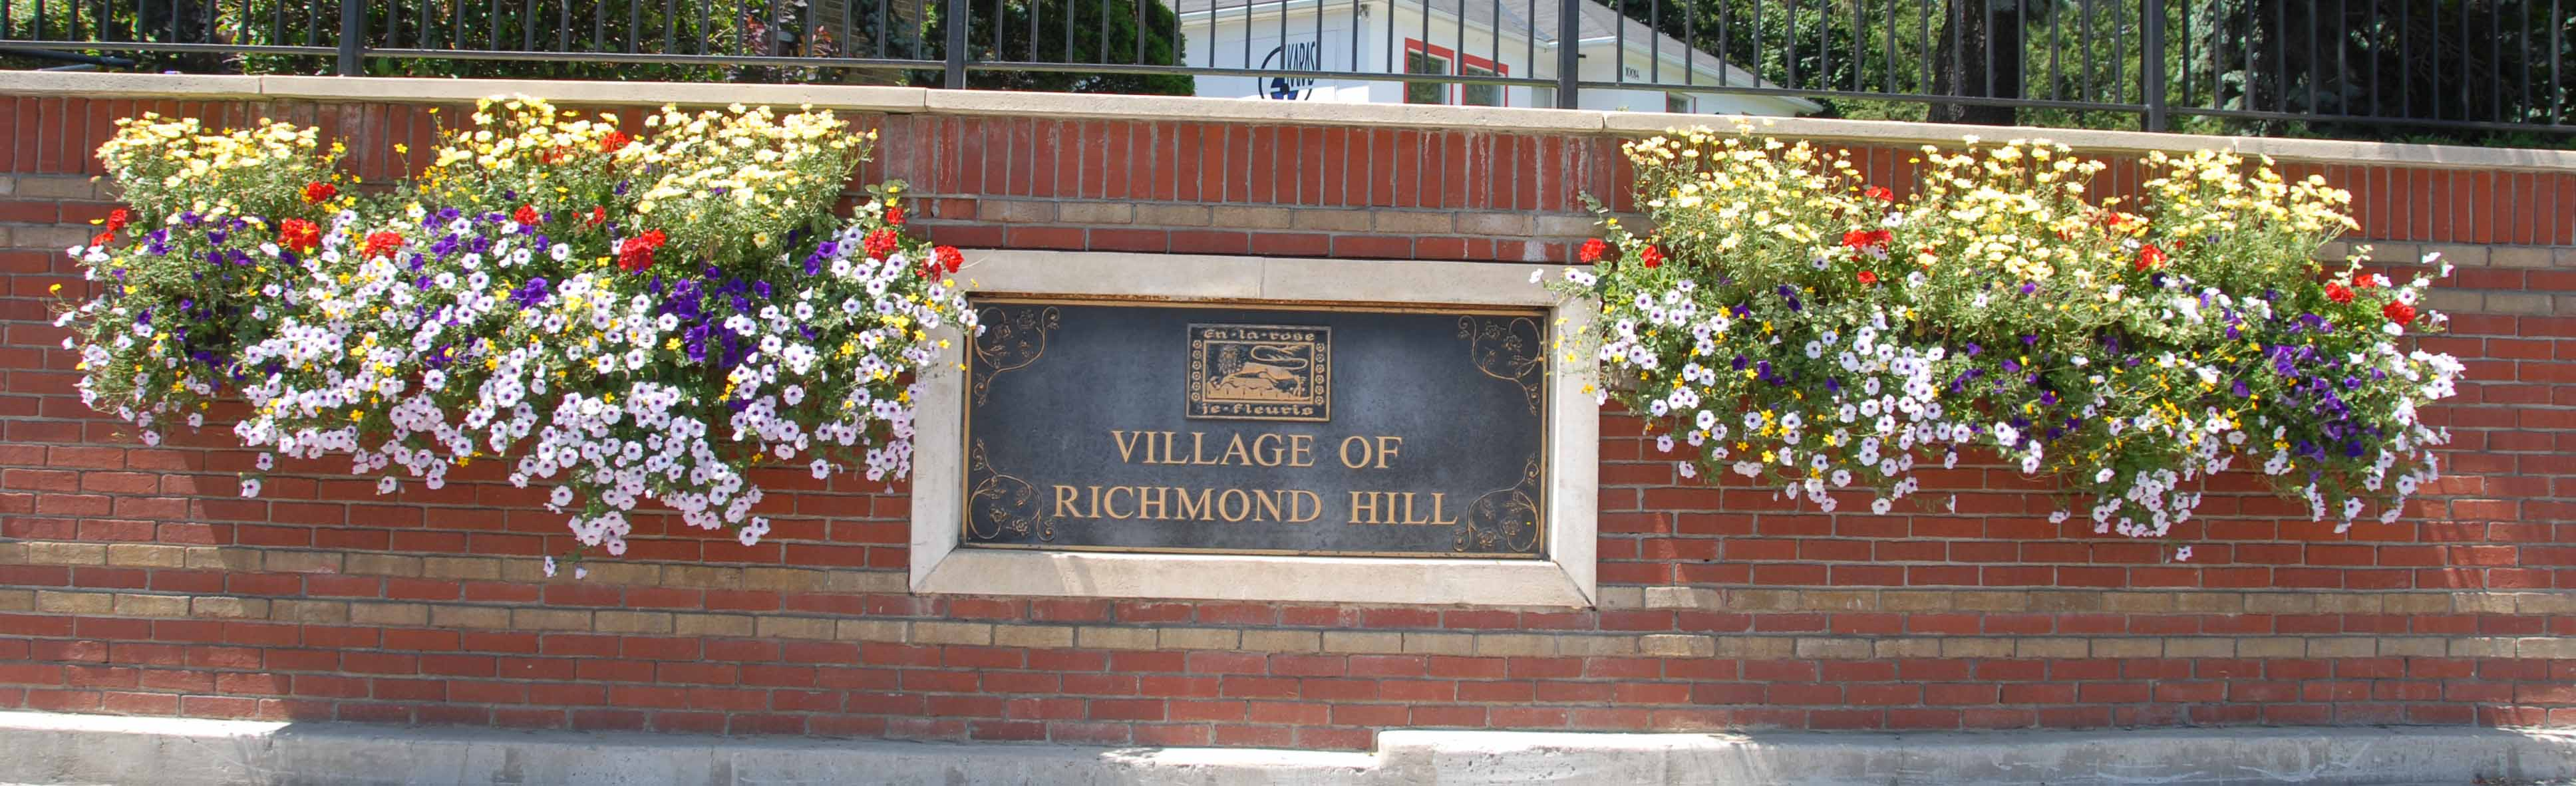 village of Richmond Hill sign on Yonge Street